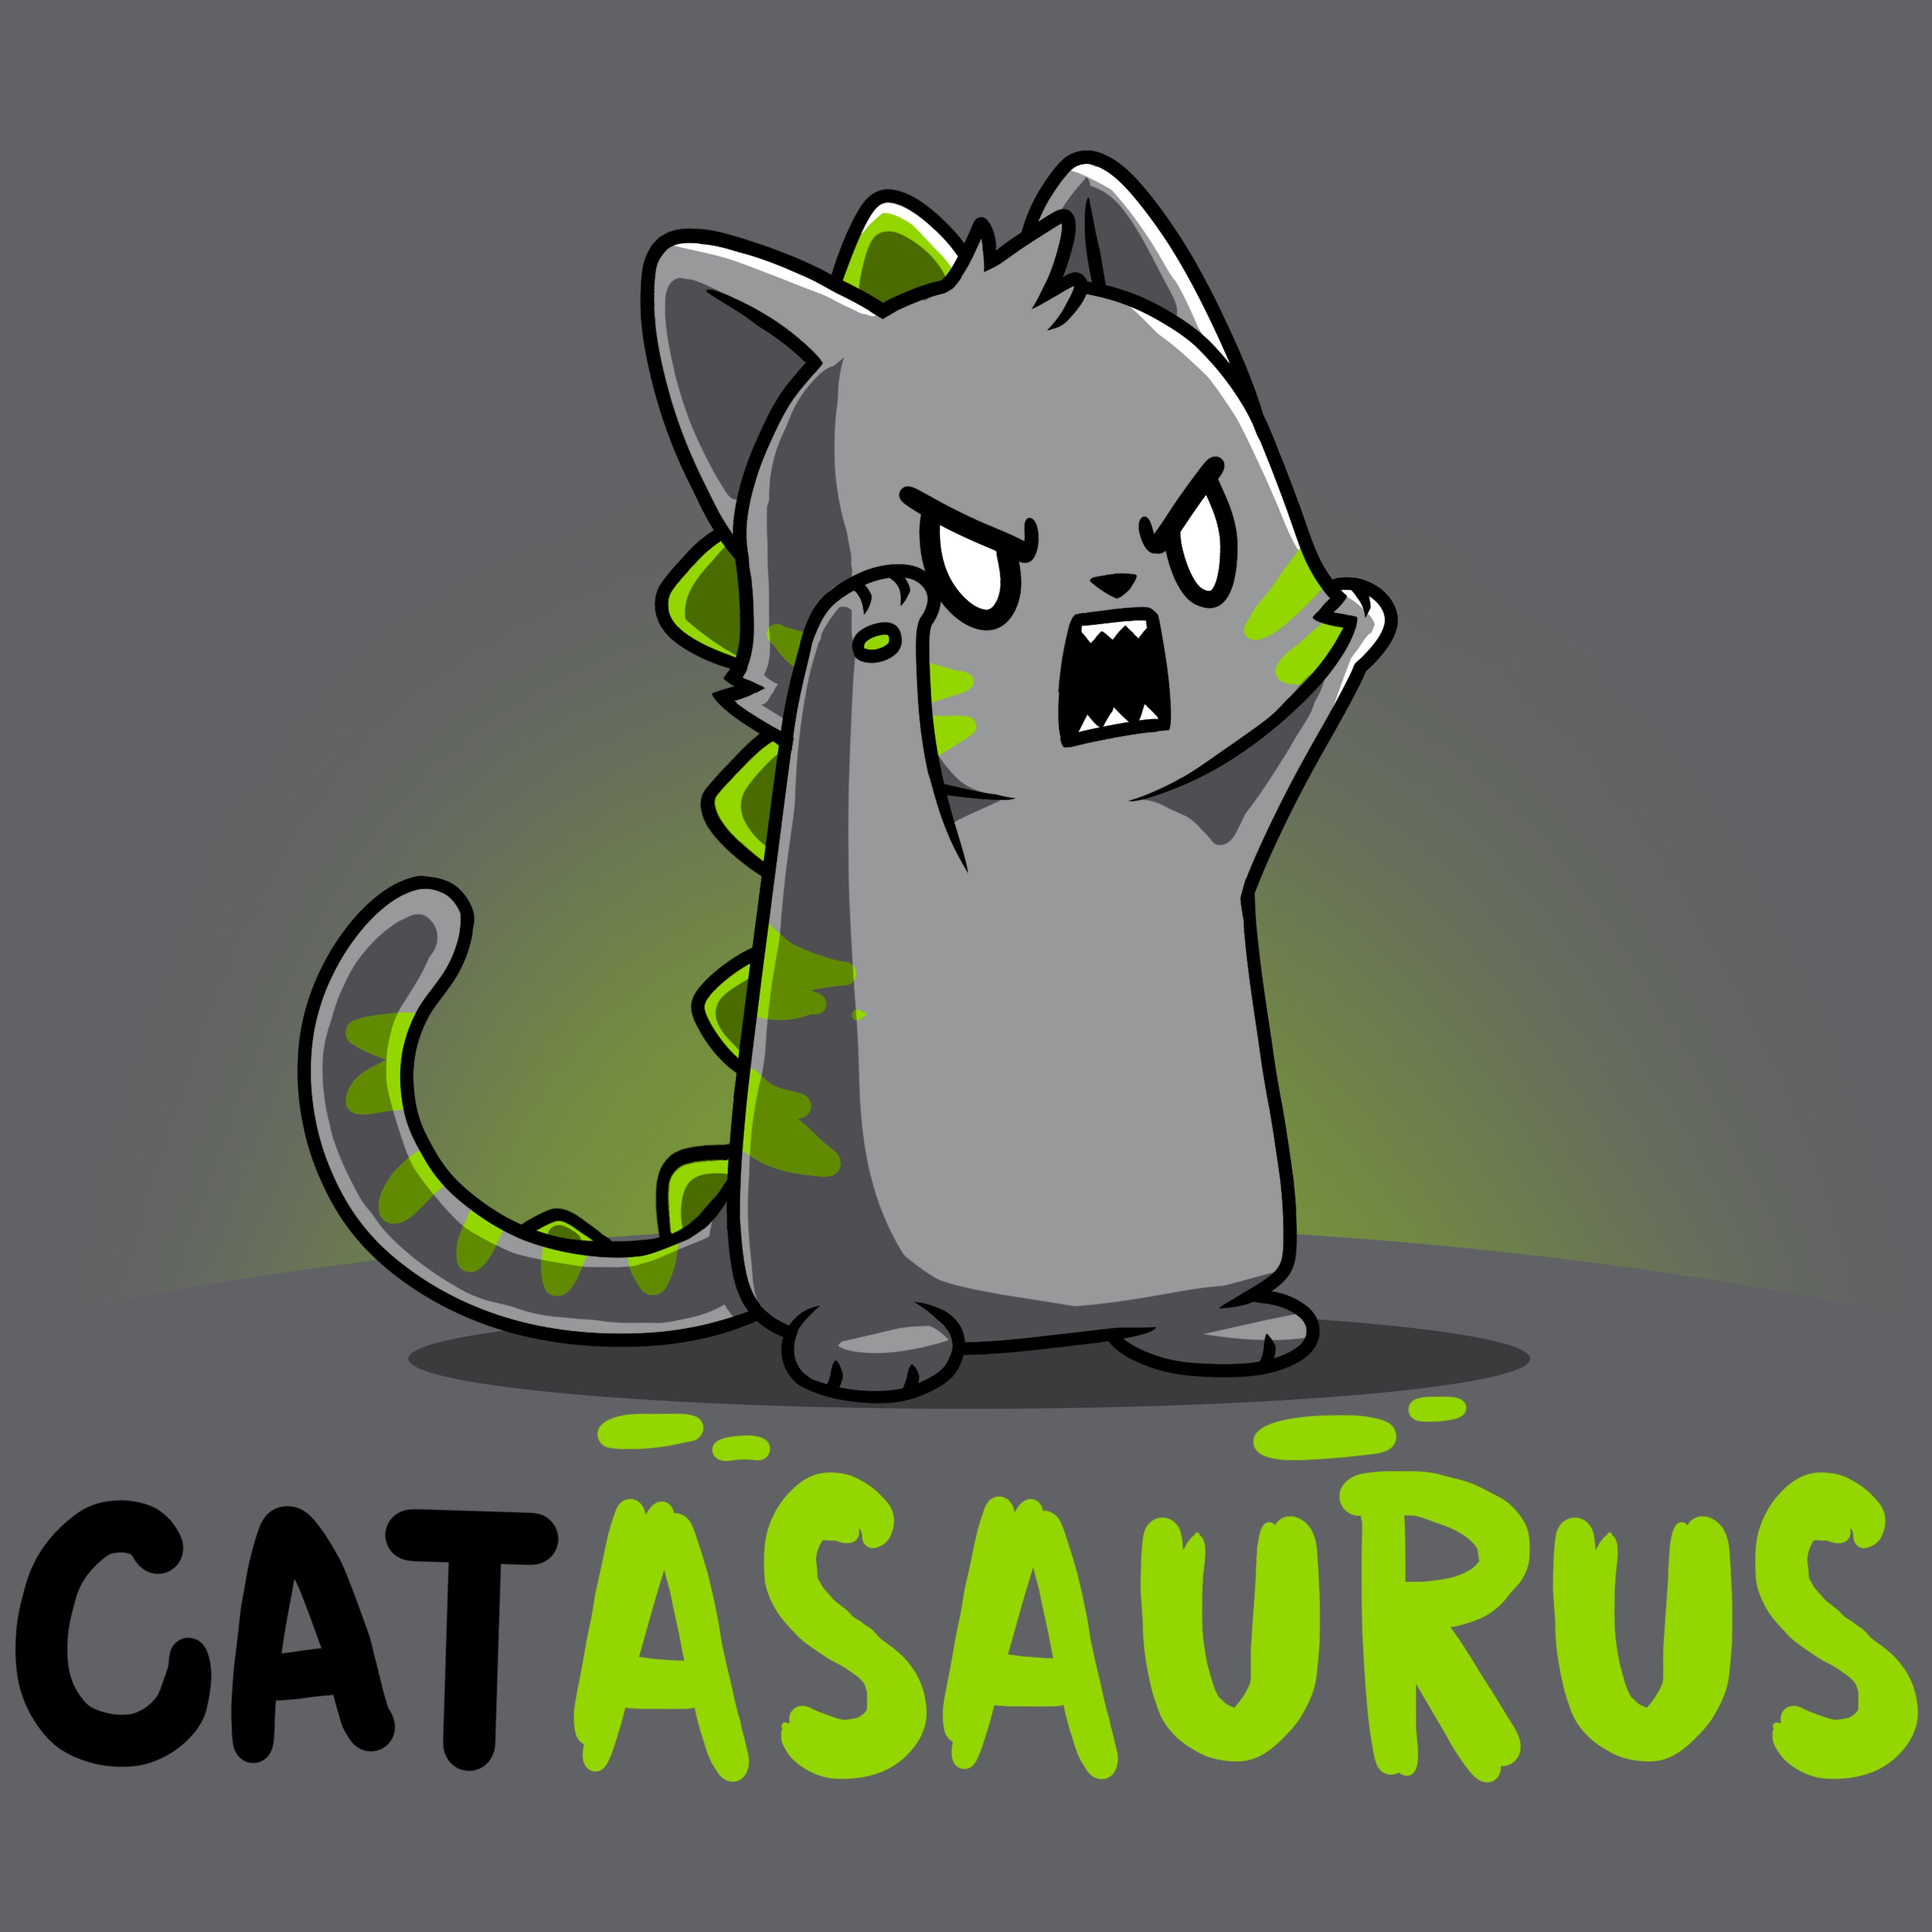 Catasaurus T-Shirt Teeturtle